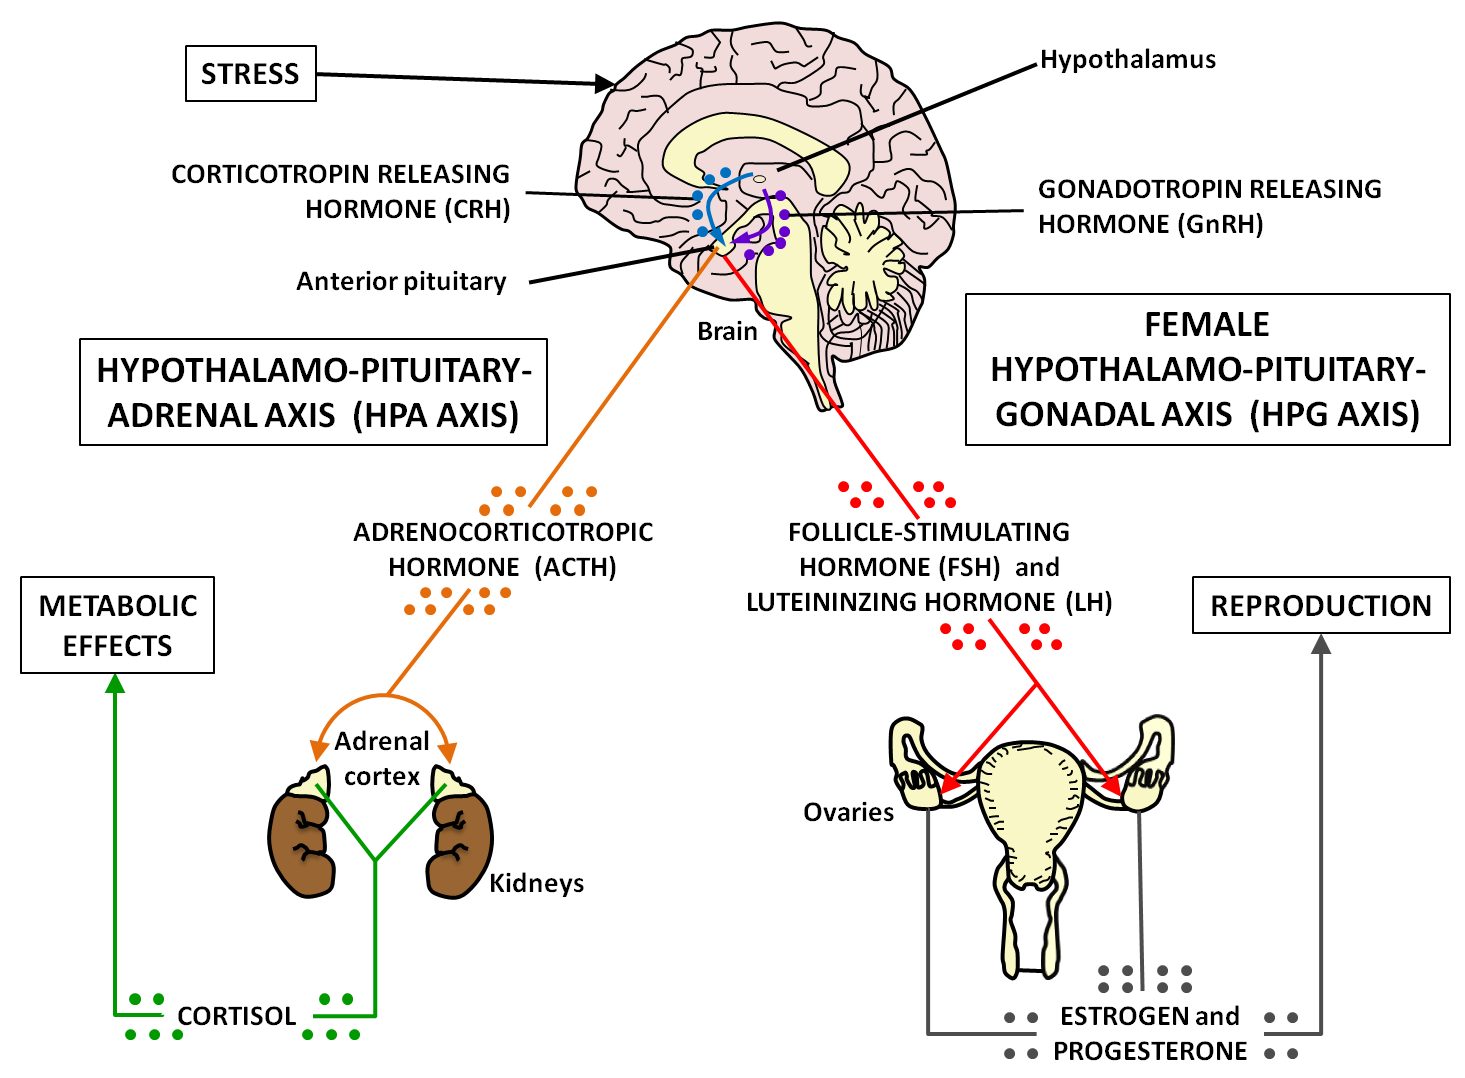 a research on thyroid disease and its effects on the human body As explained in the video, acth has an effect on adrenal gland  take thyroid  hormone its cold out so your body signals the hypothalamus to  neil  gesundheit: well, the topic for today is endocrinology, which is the study of  hormones.